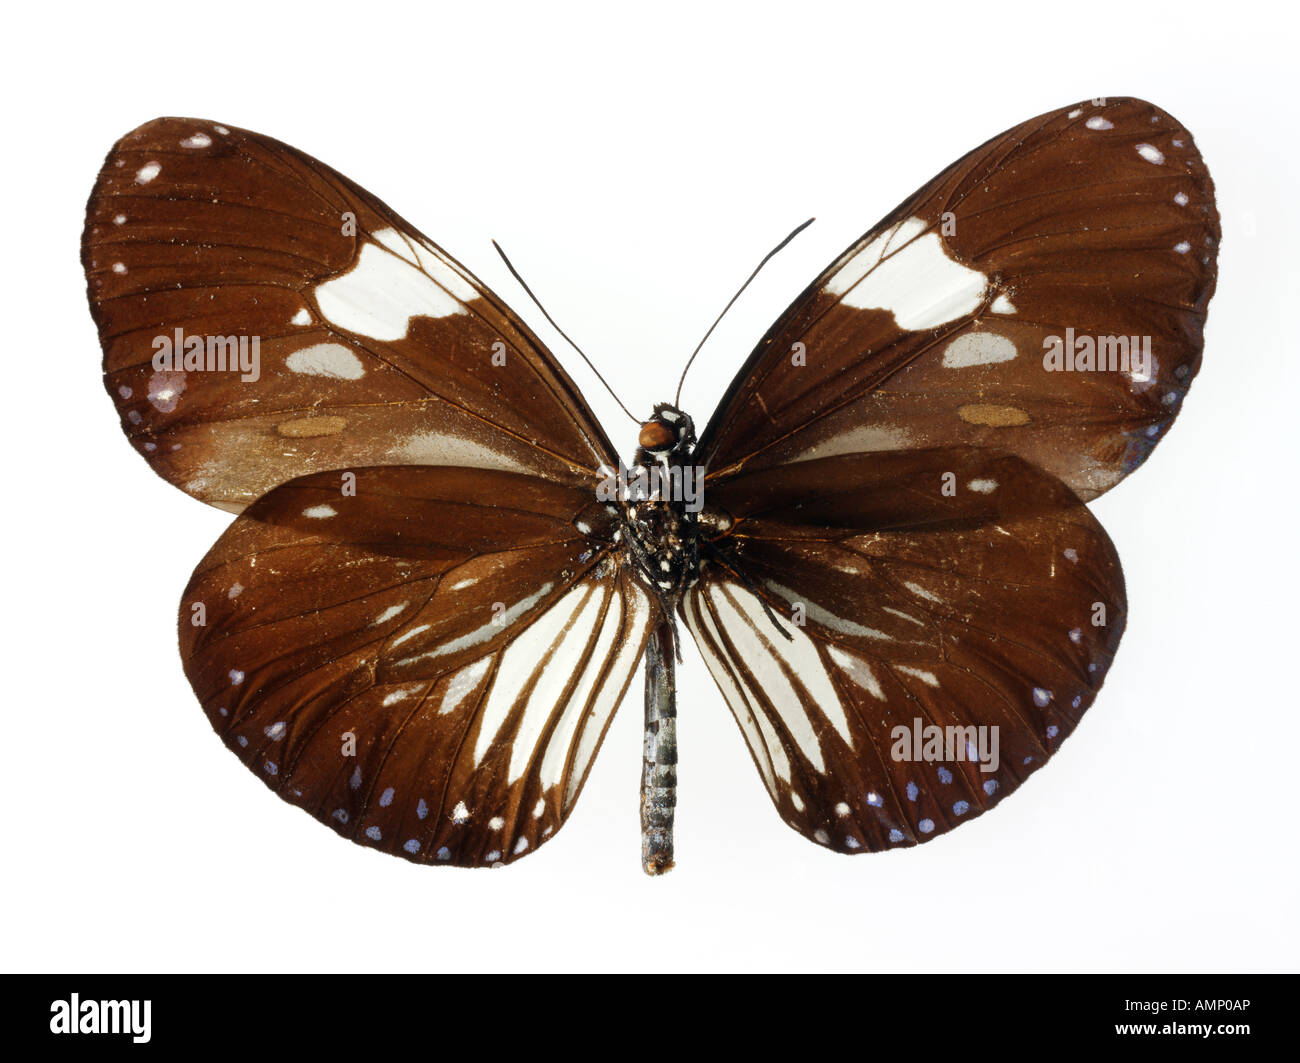 Butterfly close up - Stock Image